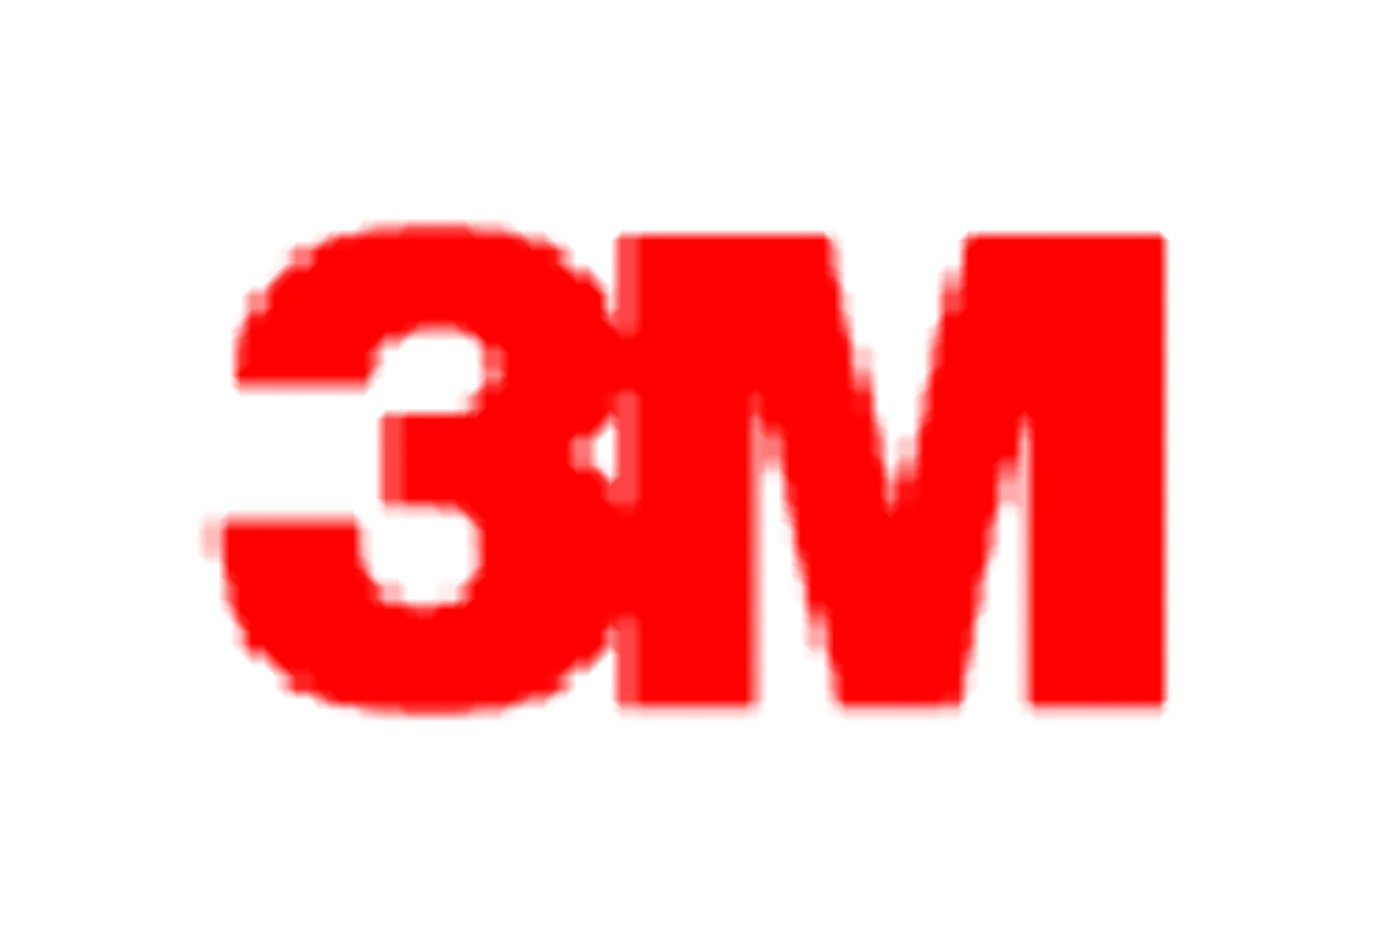 3M 82-A3 In-Line Resin 82-A Series Power Cable Splice Kit 1.56 Inch OD 3/0 AWG-400 KCMIL ScotchcastTM by 3M